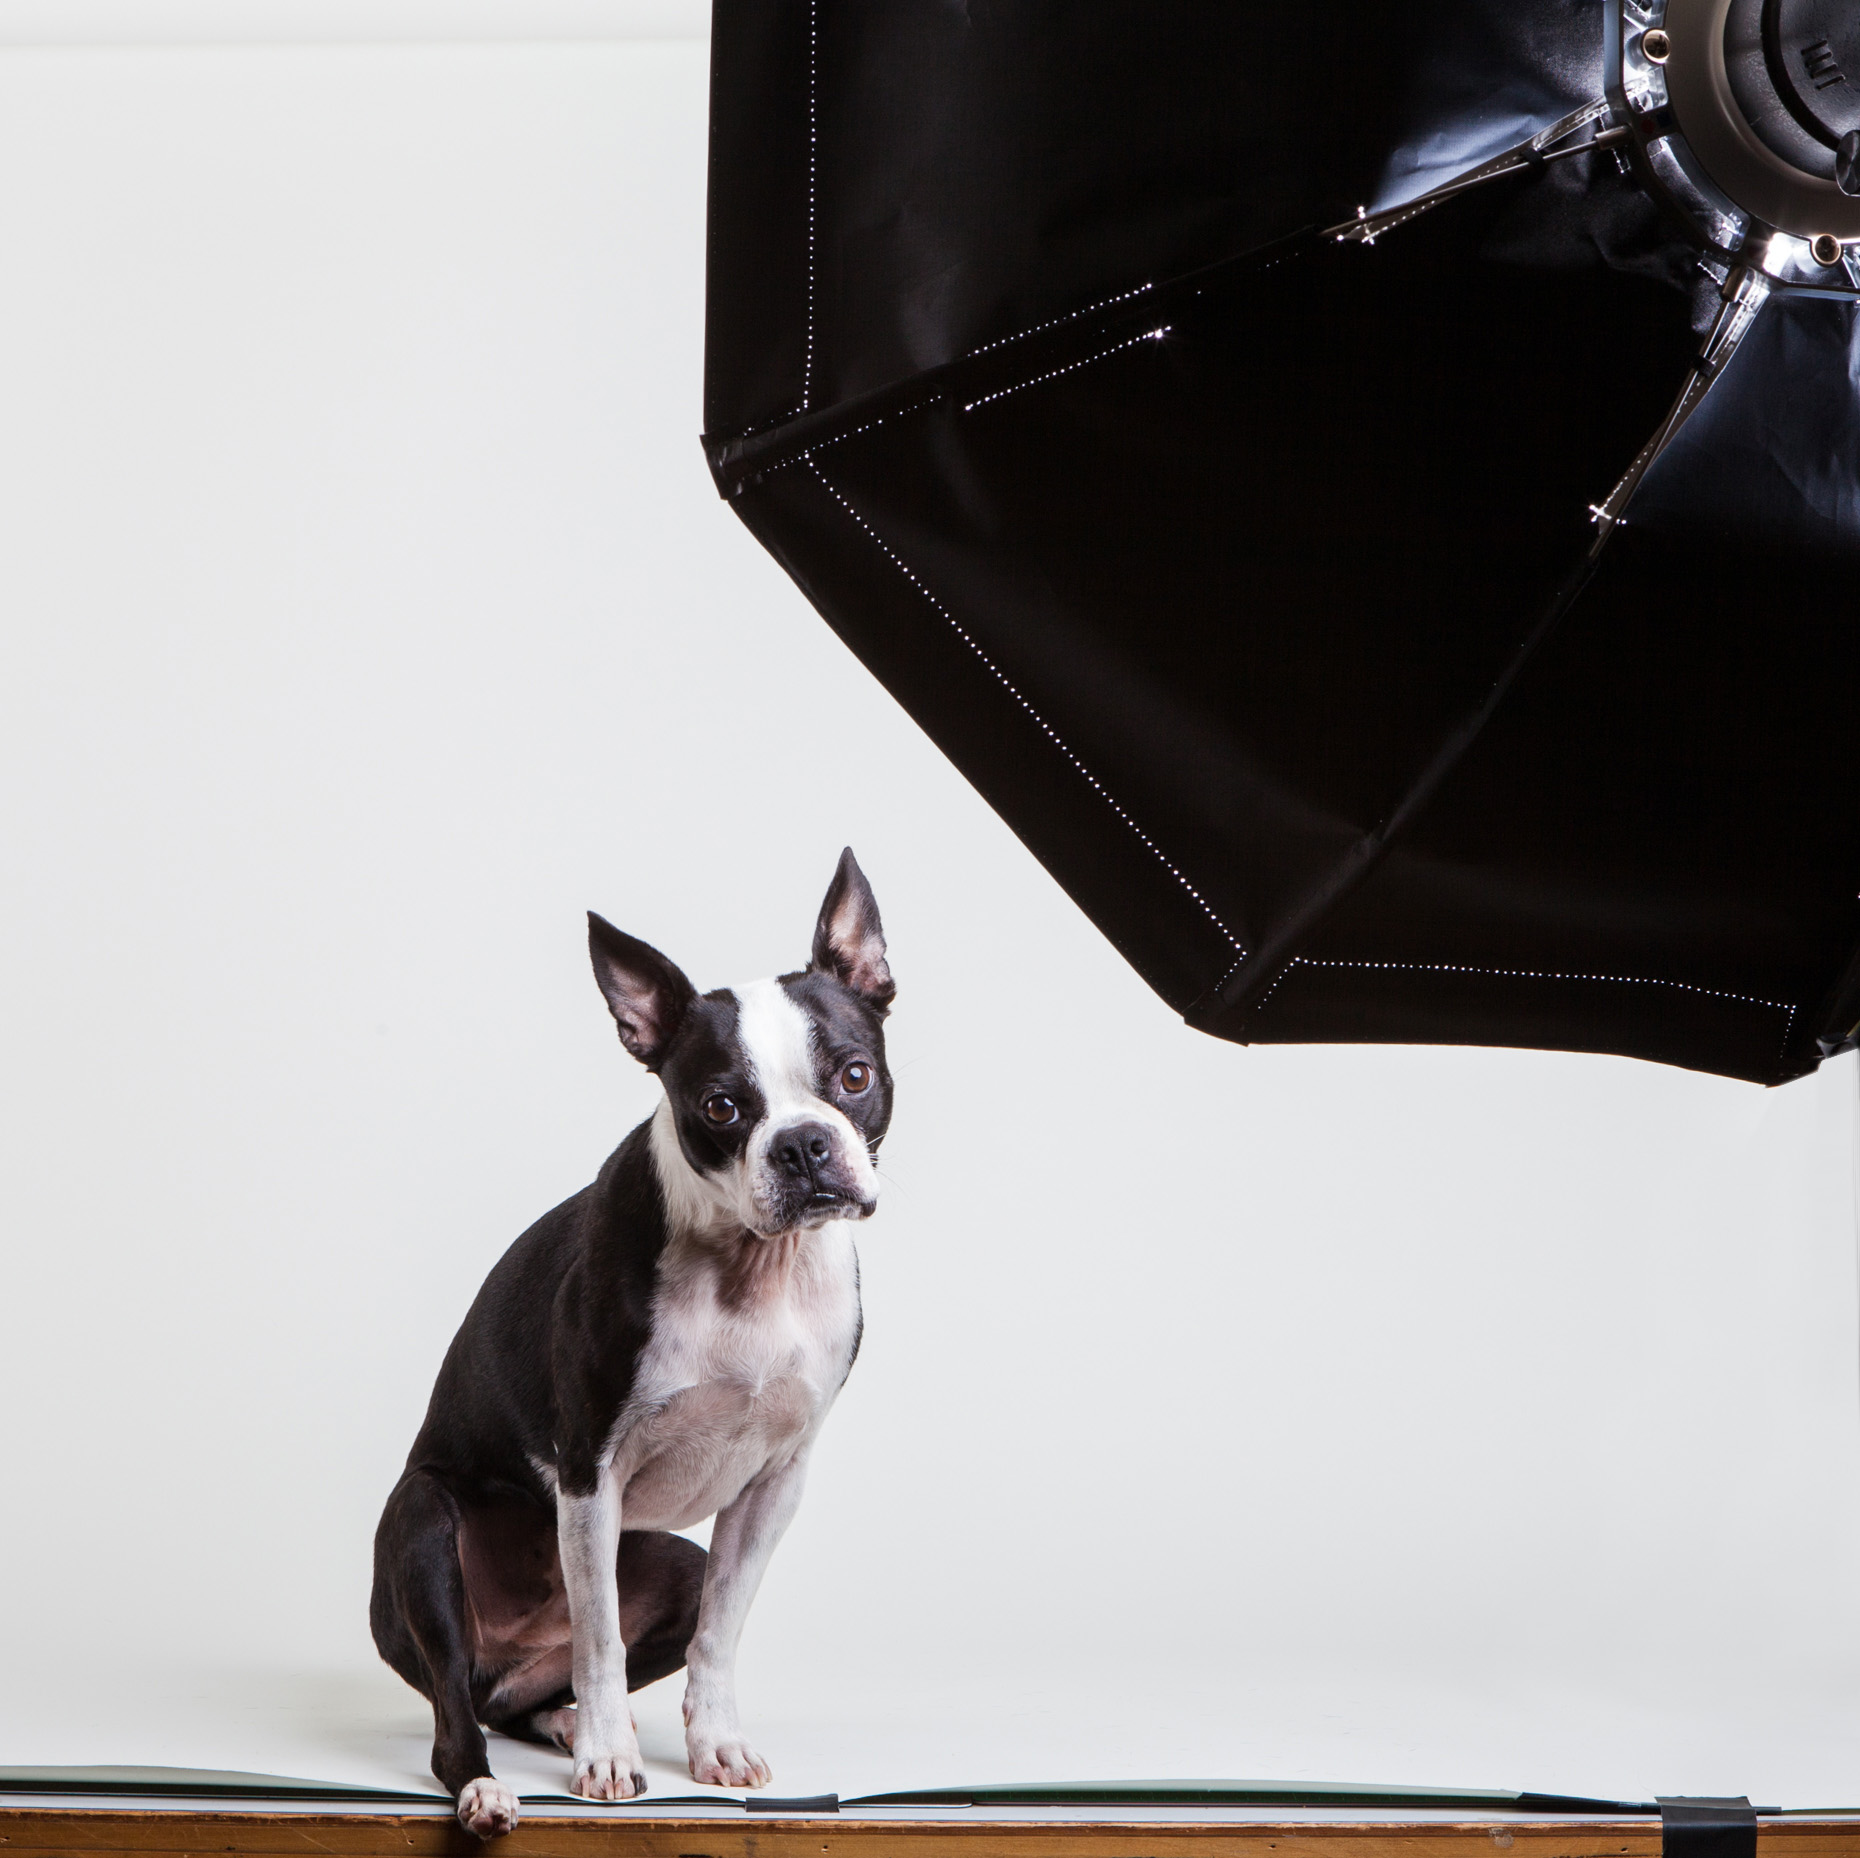 Studio Shoot with Ollie│Lifestyle Dog Photographer│ Hannele Lahti│ Washington DC, VA